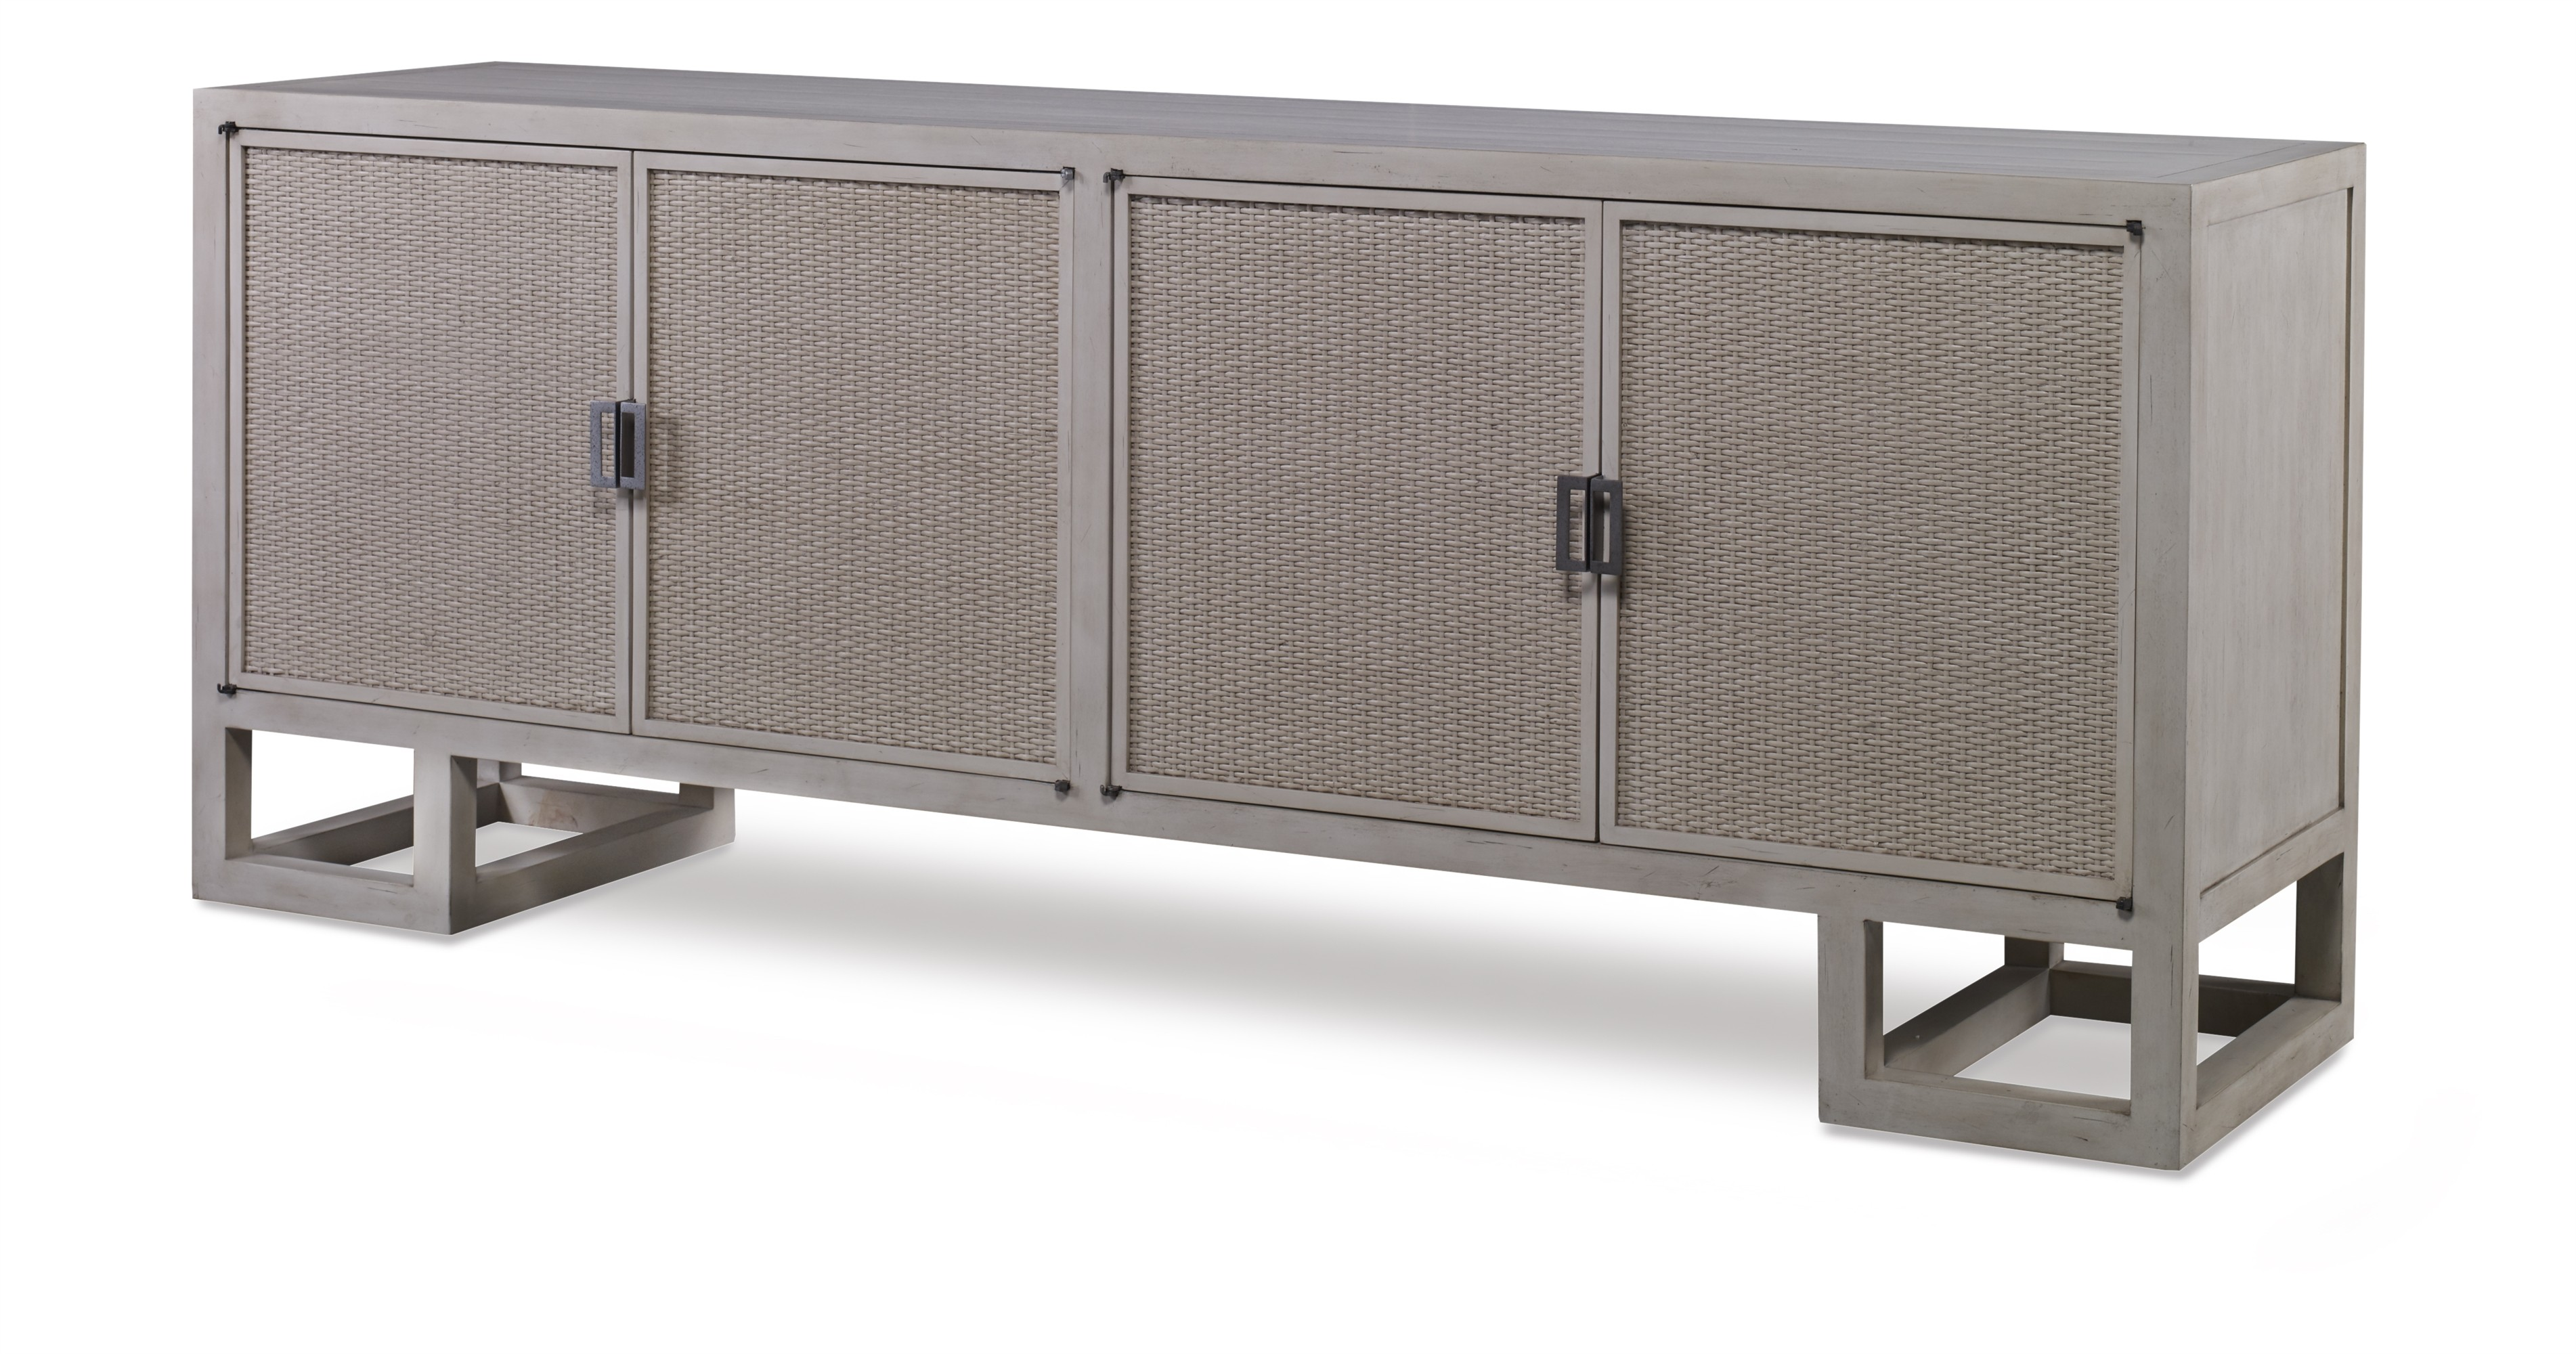 Mackinaw 4 Door Credenza-Peninsula (Lw-420-105, C105-420)